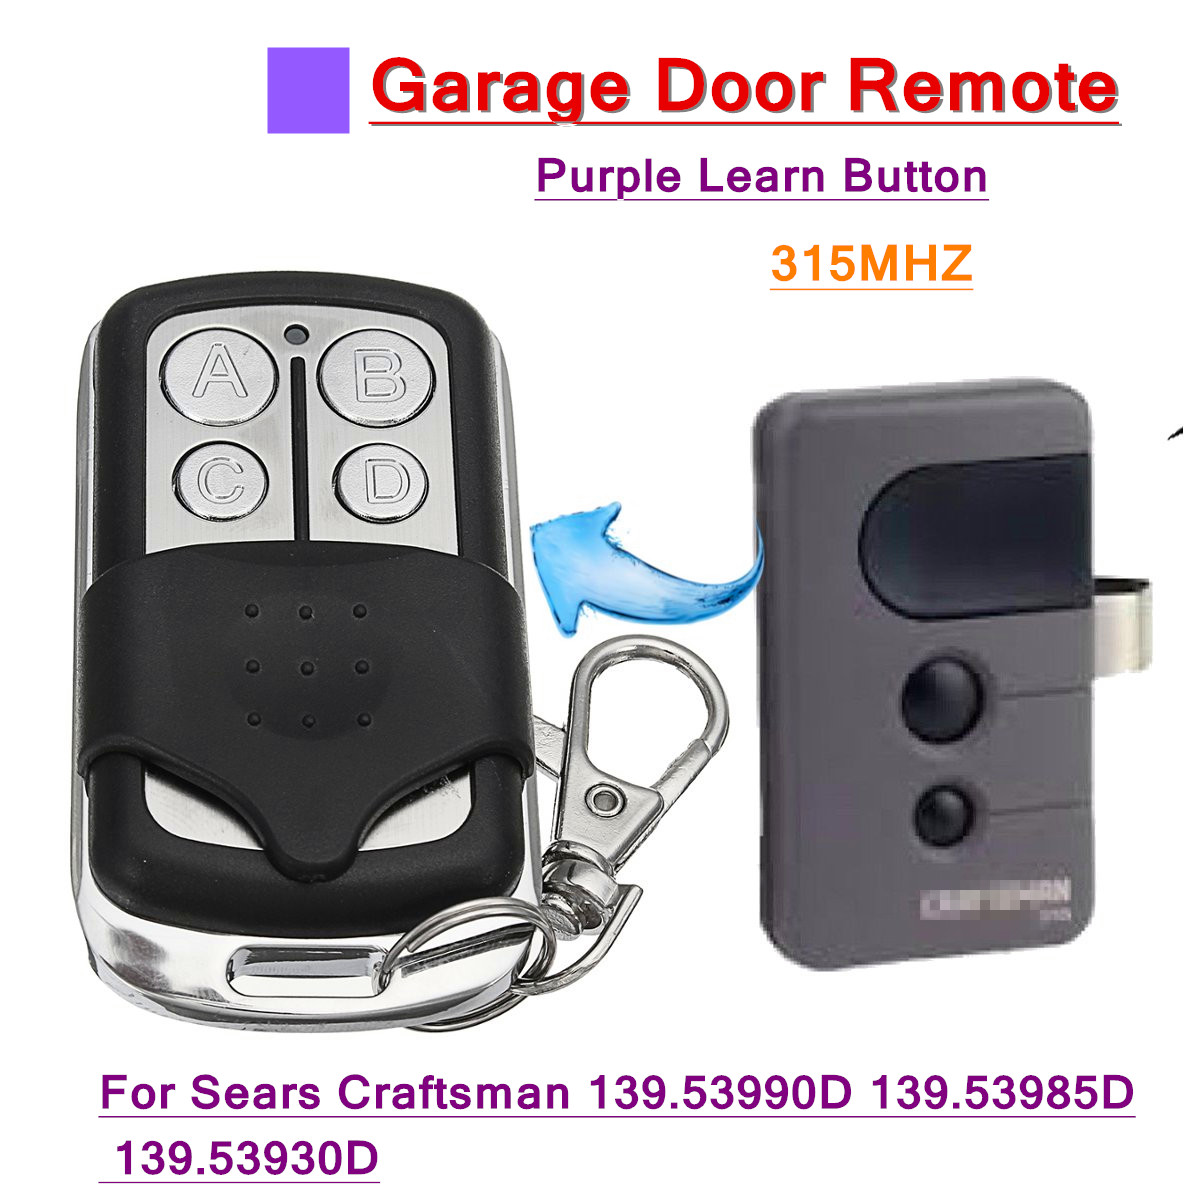 Garage Gate Multi Remote 315MHz for Sears Craftsman 139.53990D 139.53985D 139.539